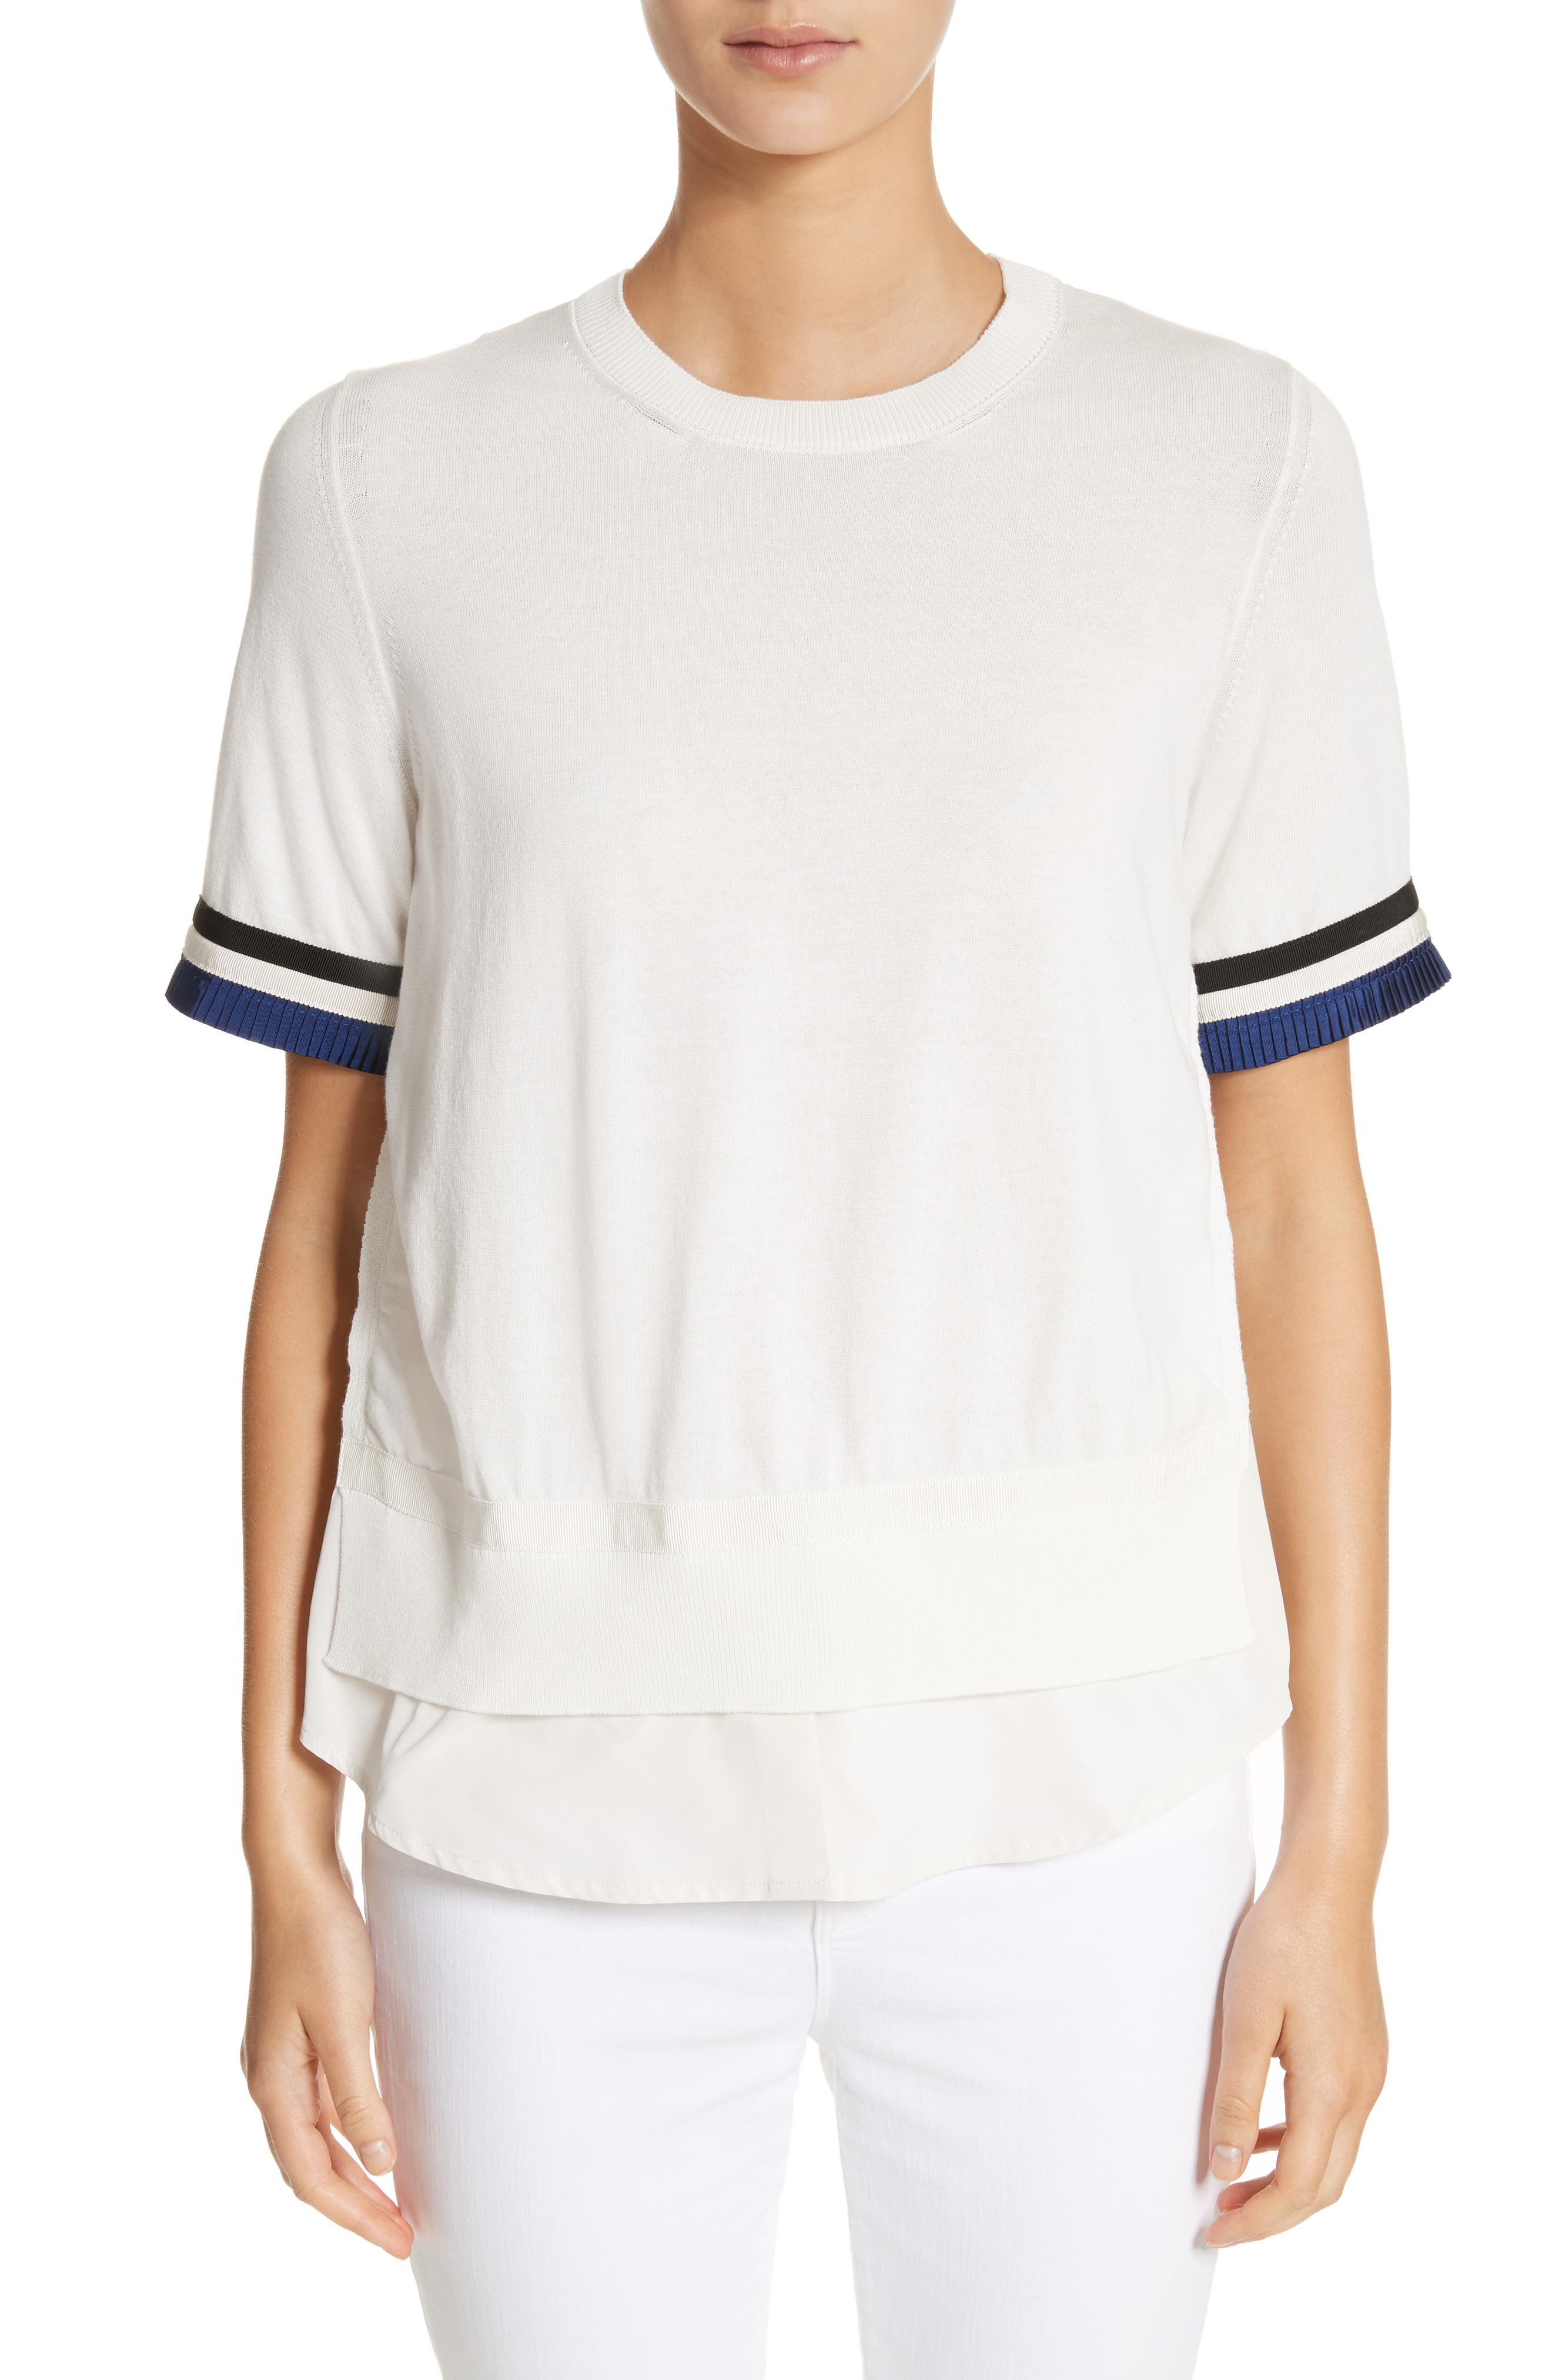 Maglia Mixed Media Top,                         Main,                         color, White / Navy